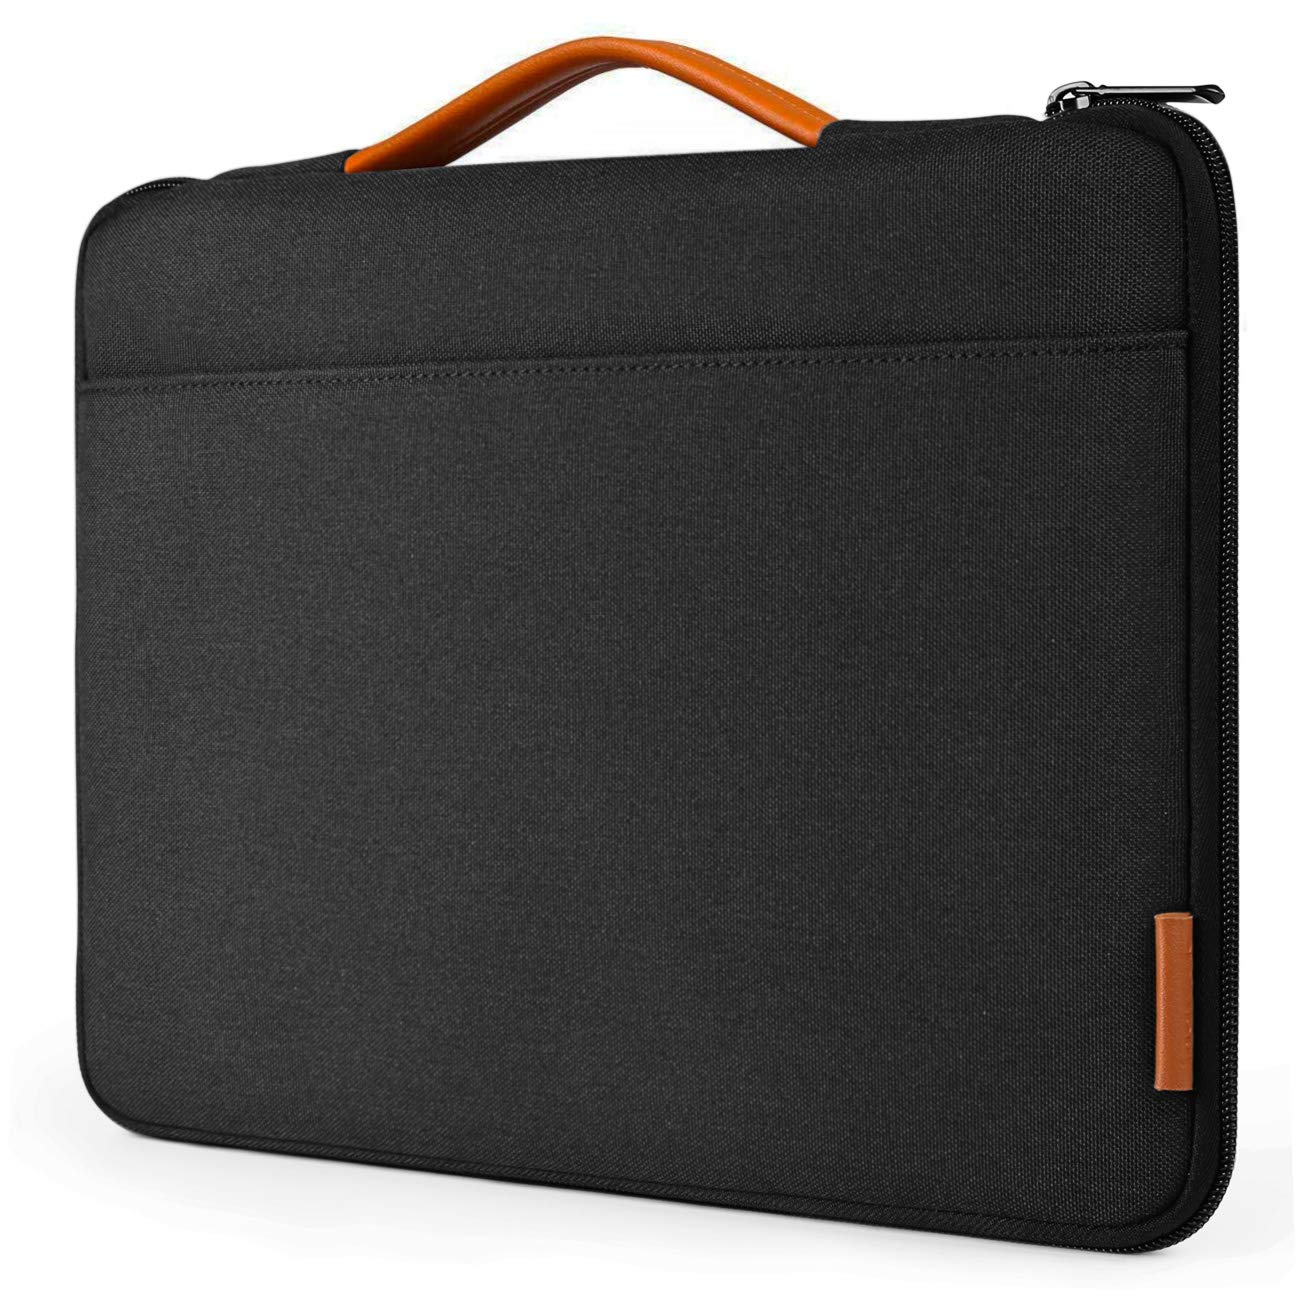 Inateck 13-13.3 Inch Laptop Case Bag Compatible 13.3 Inch MacBook Air(including 2018)/MacBook Pro Retina 13'' 2012-2015,2018/2017/2016,Surface Pro 3/4/5/6, Surface Laptop 2017/Surface Laptop 2 - Black by Inateck